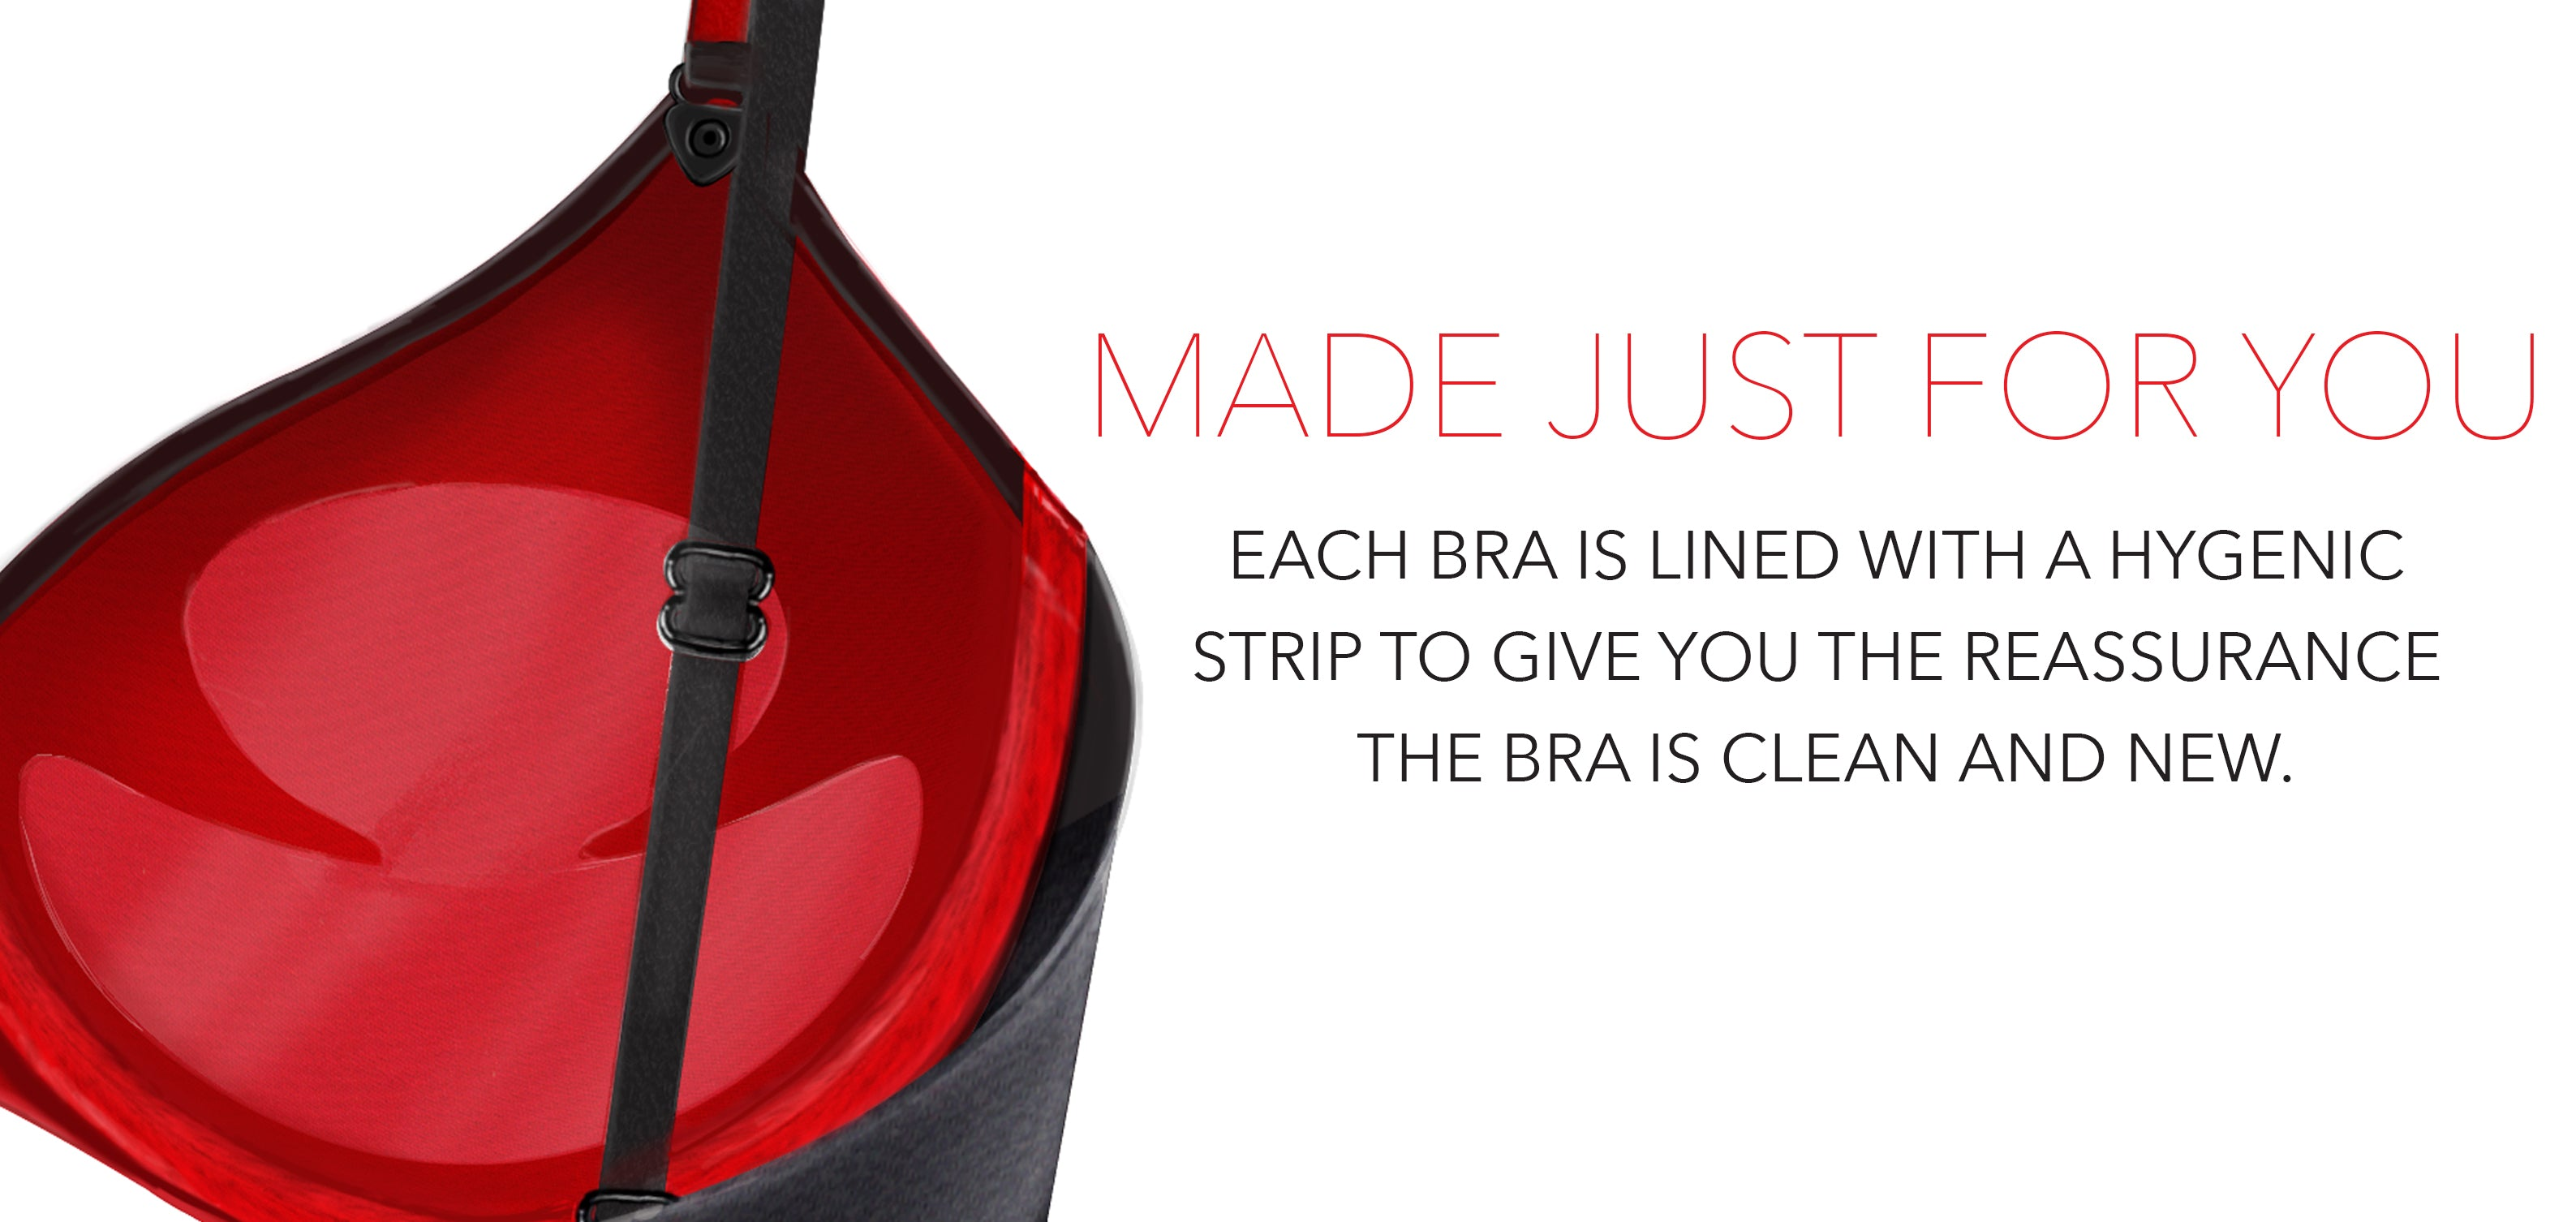 Best_Bras_Bra_Multiway_Multi-Way_Demi Cup_Full cup_Comfortable_Hygiene_Universe Bra_Simply Me